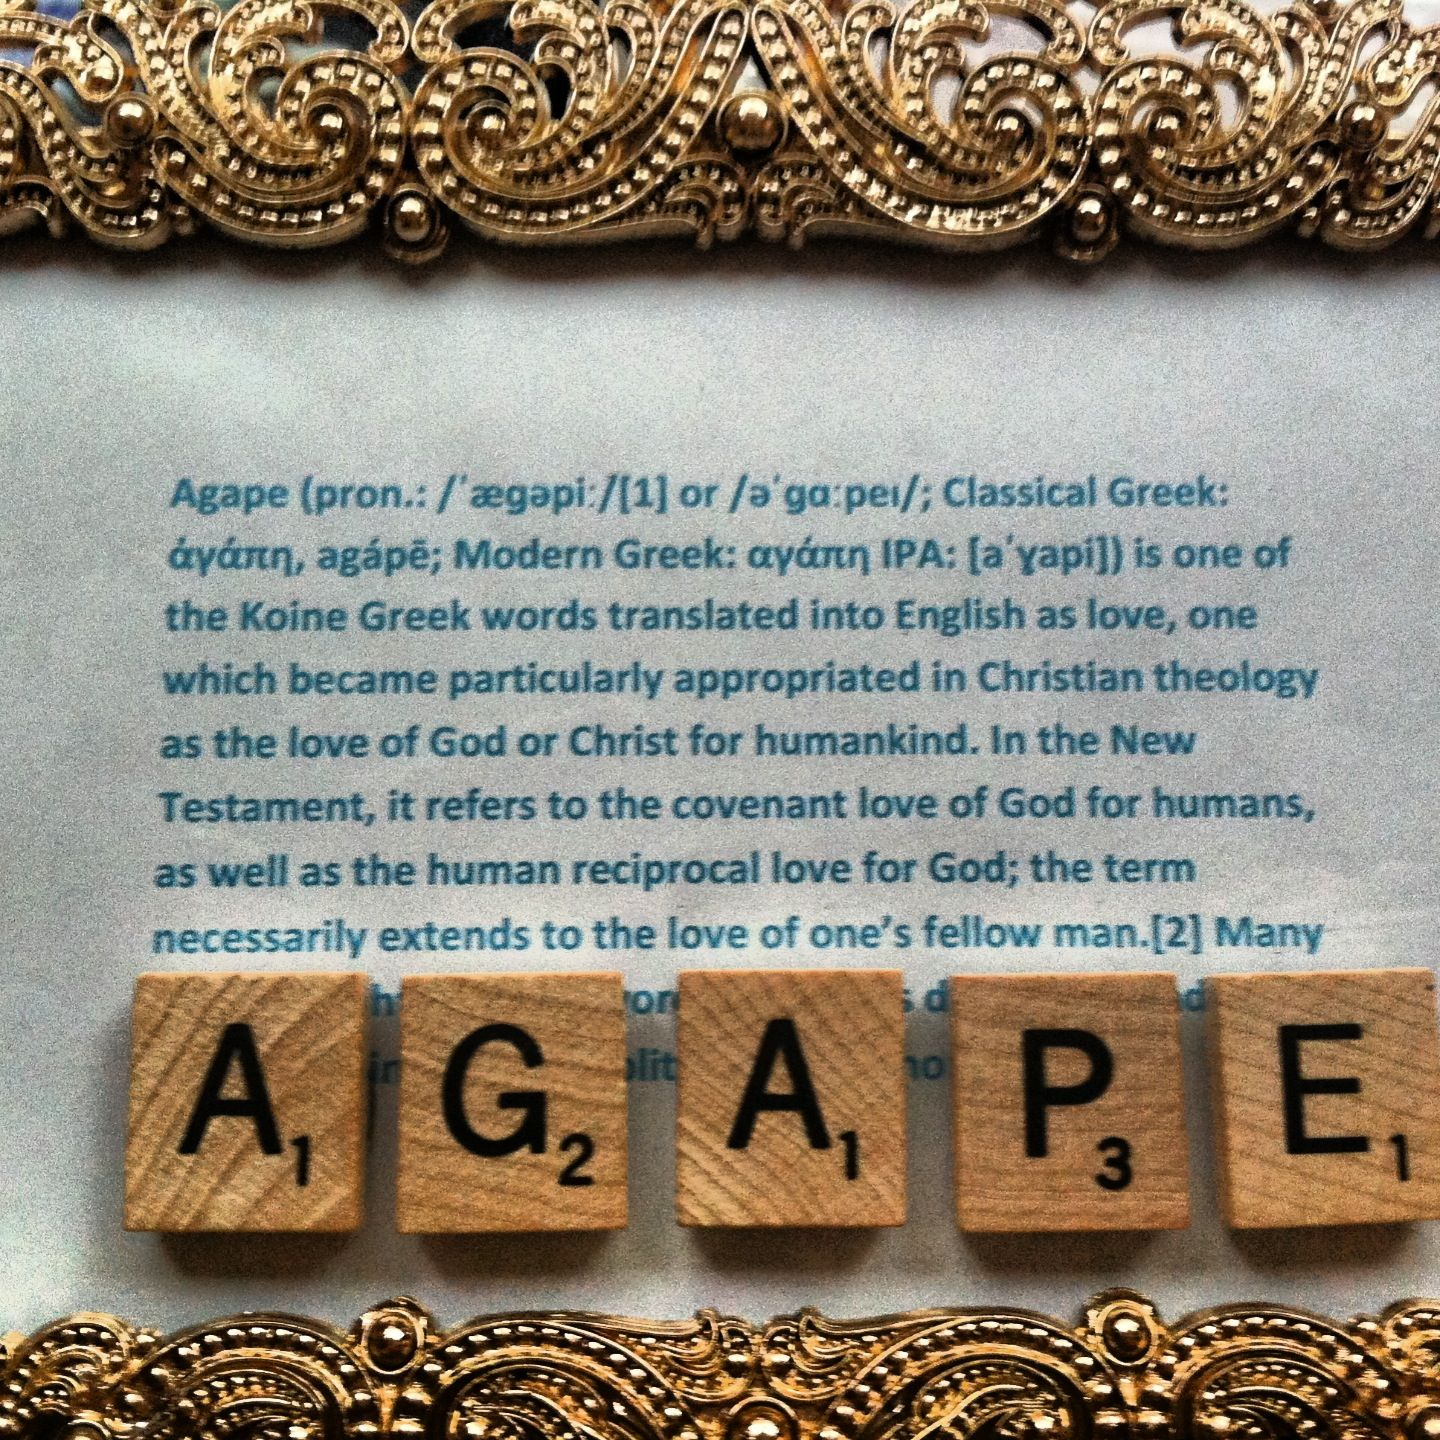 Gives A Definition Of Agape And How It Is Greek For Universal Love And Christian Theology Adopted It To Means Love For Us And Our Love For